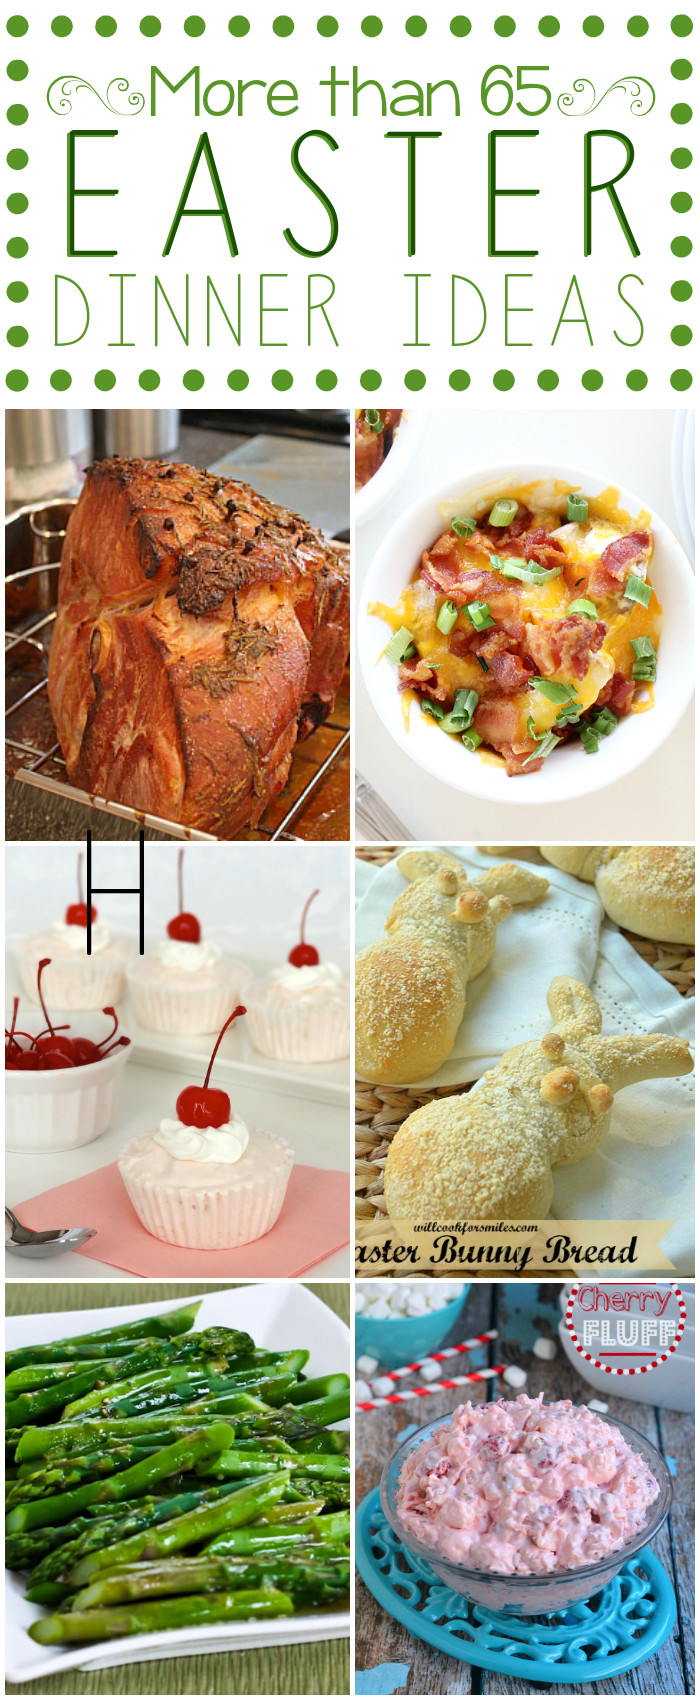 Easter Dinner Meal Ideas  Easter Dinner Ideas Round Up Mom s Test Kitchen